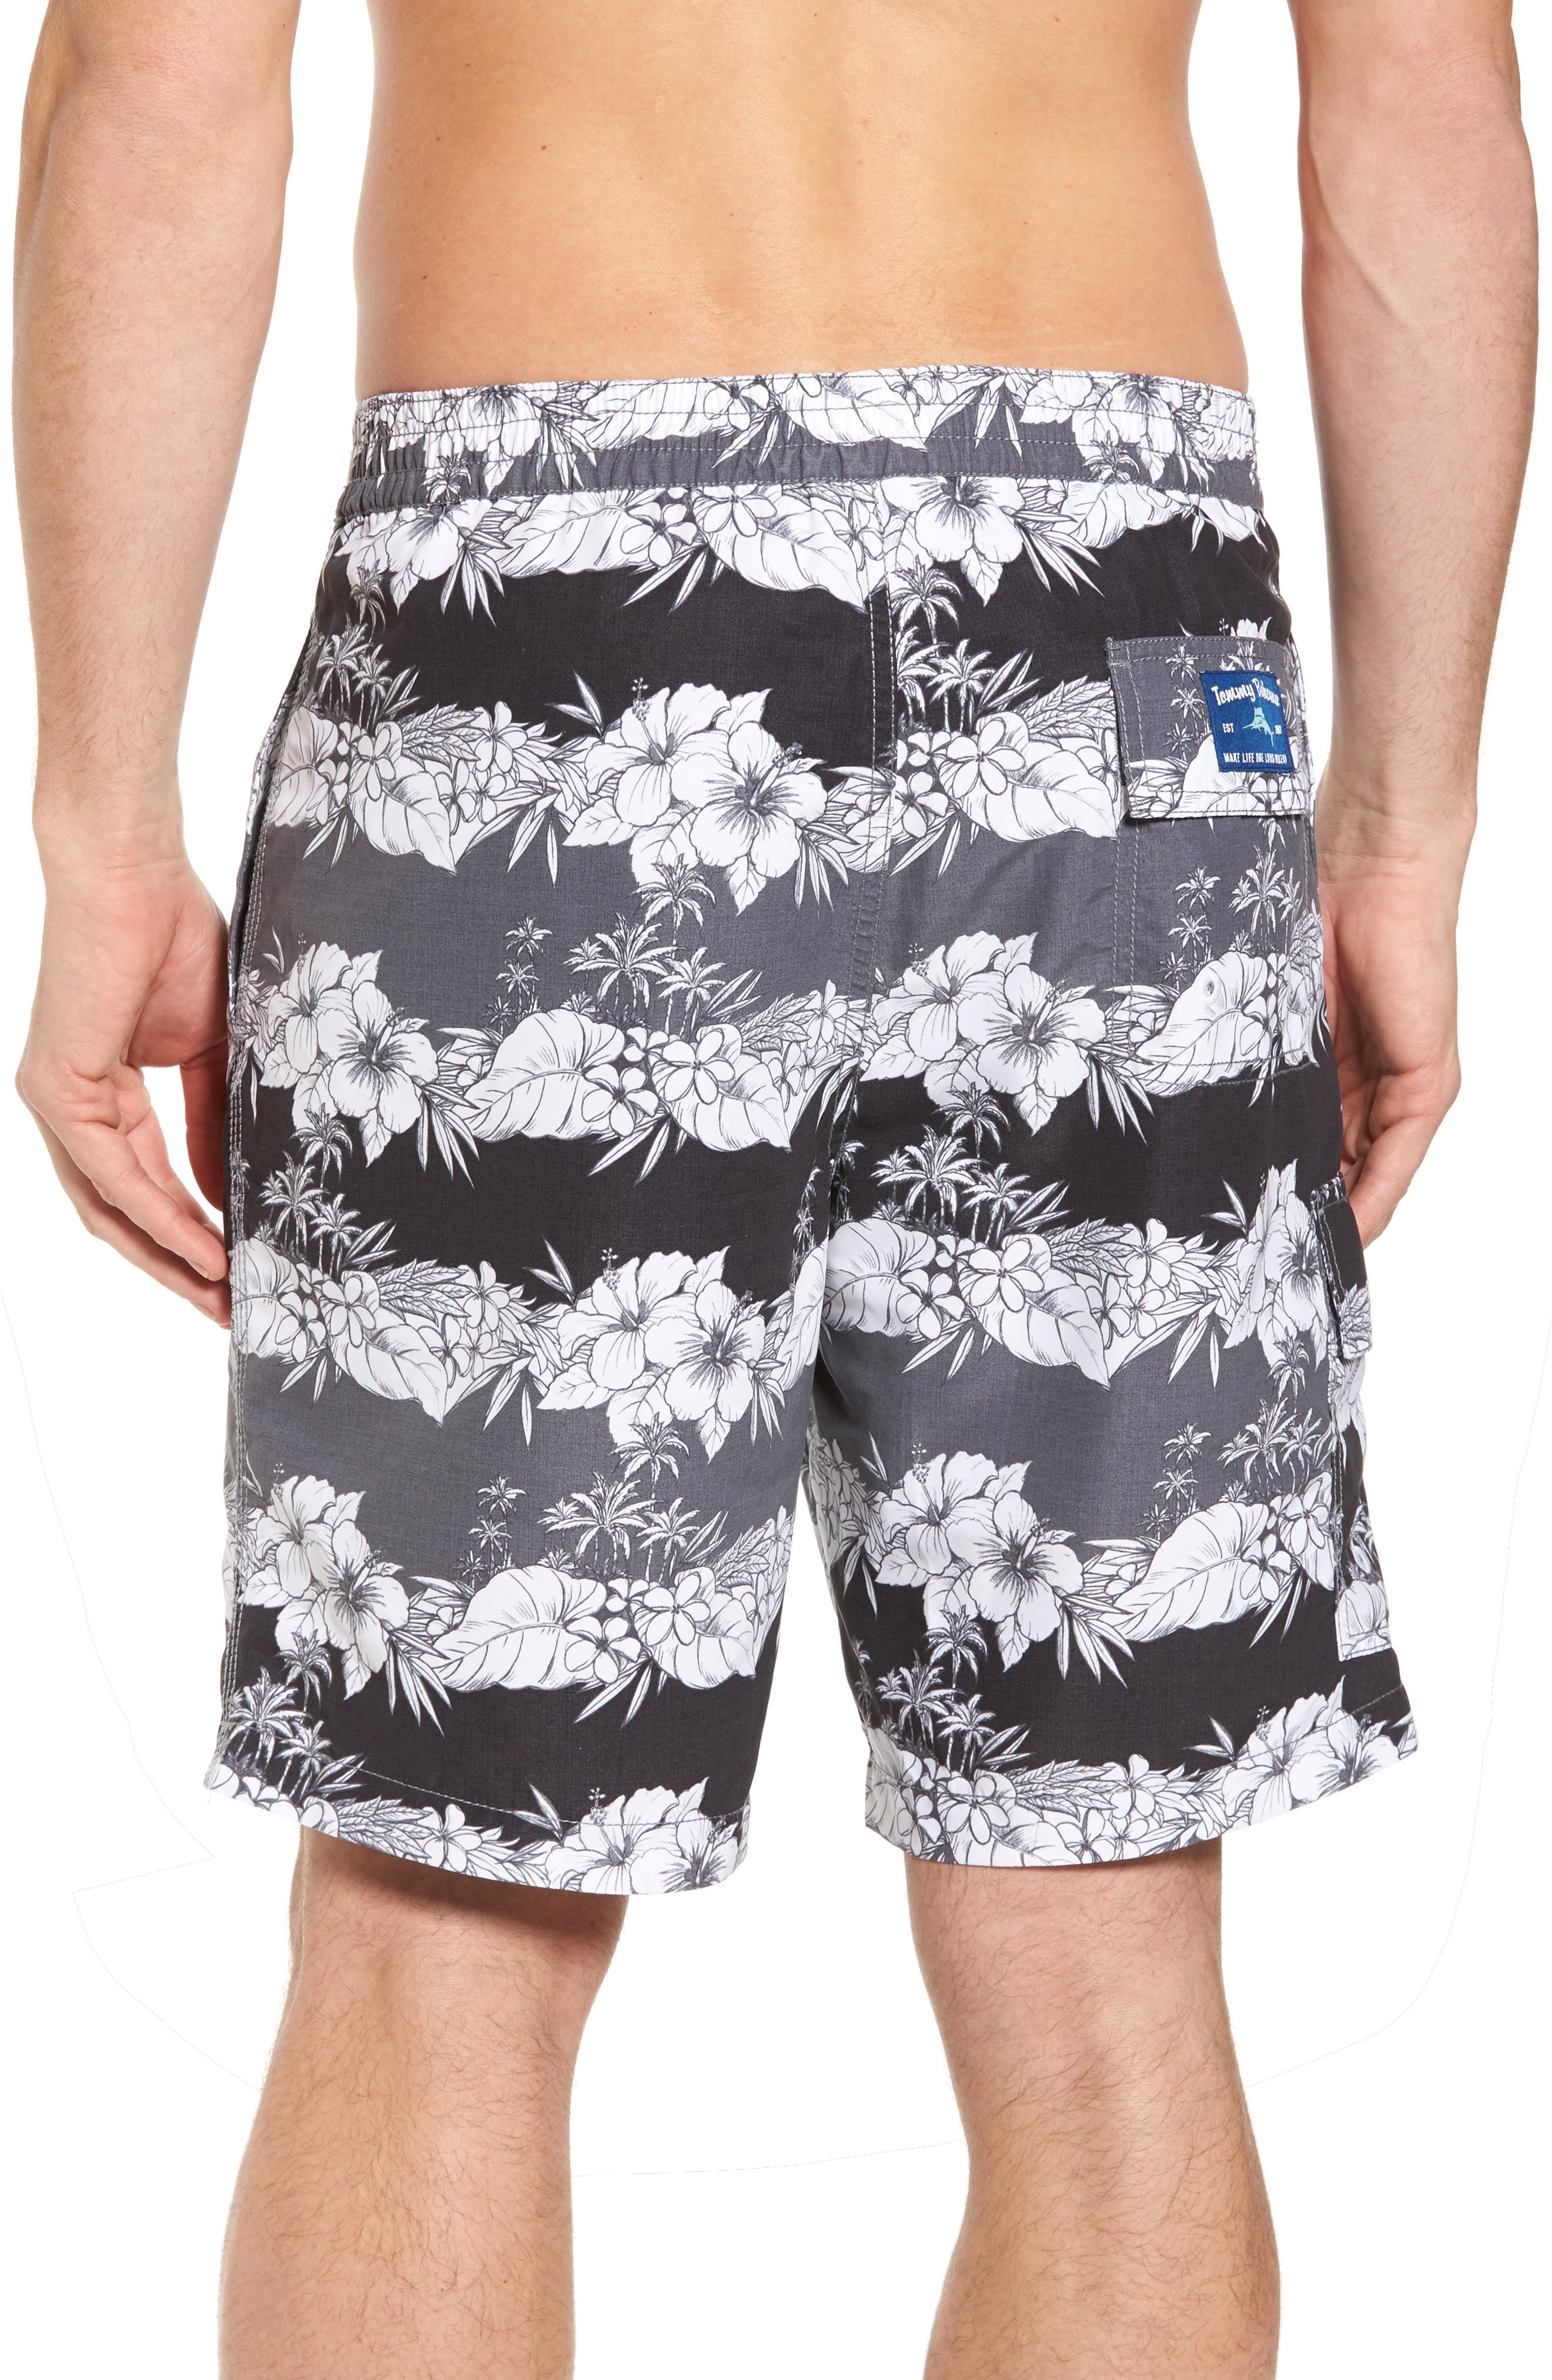 Baja Sky Vines Swim Trunks,                             Alternate thumbnail 2, color,                             001